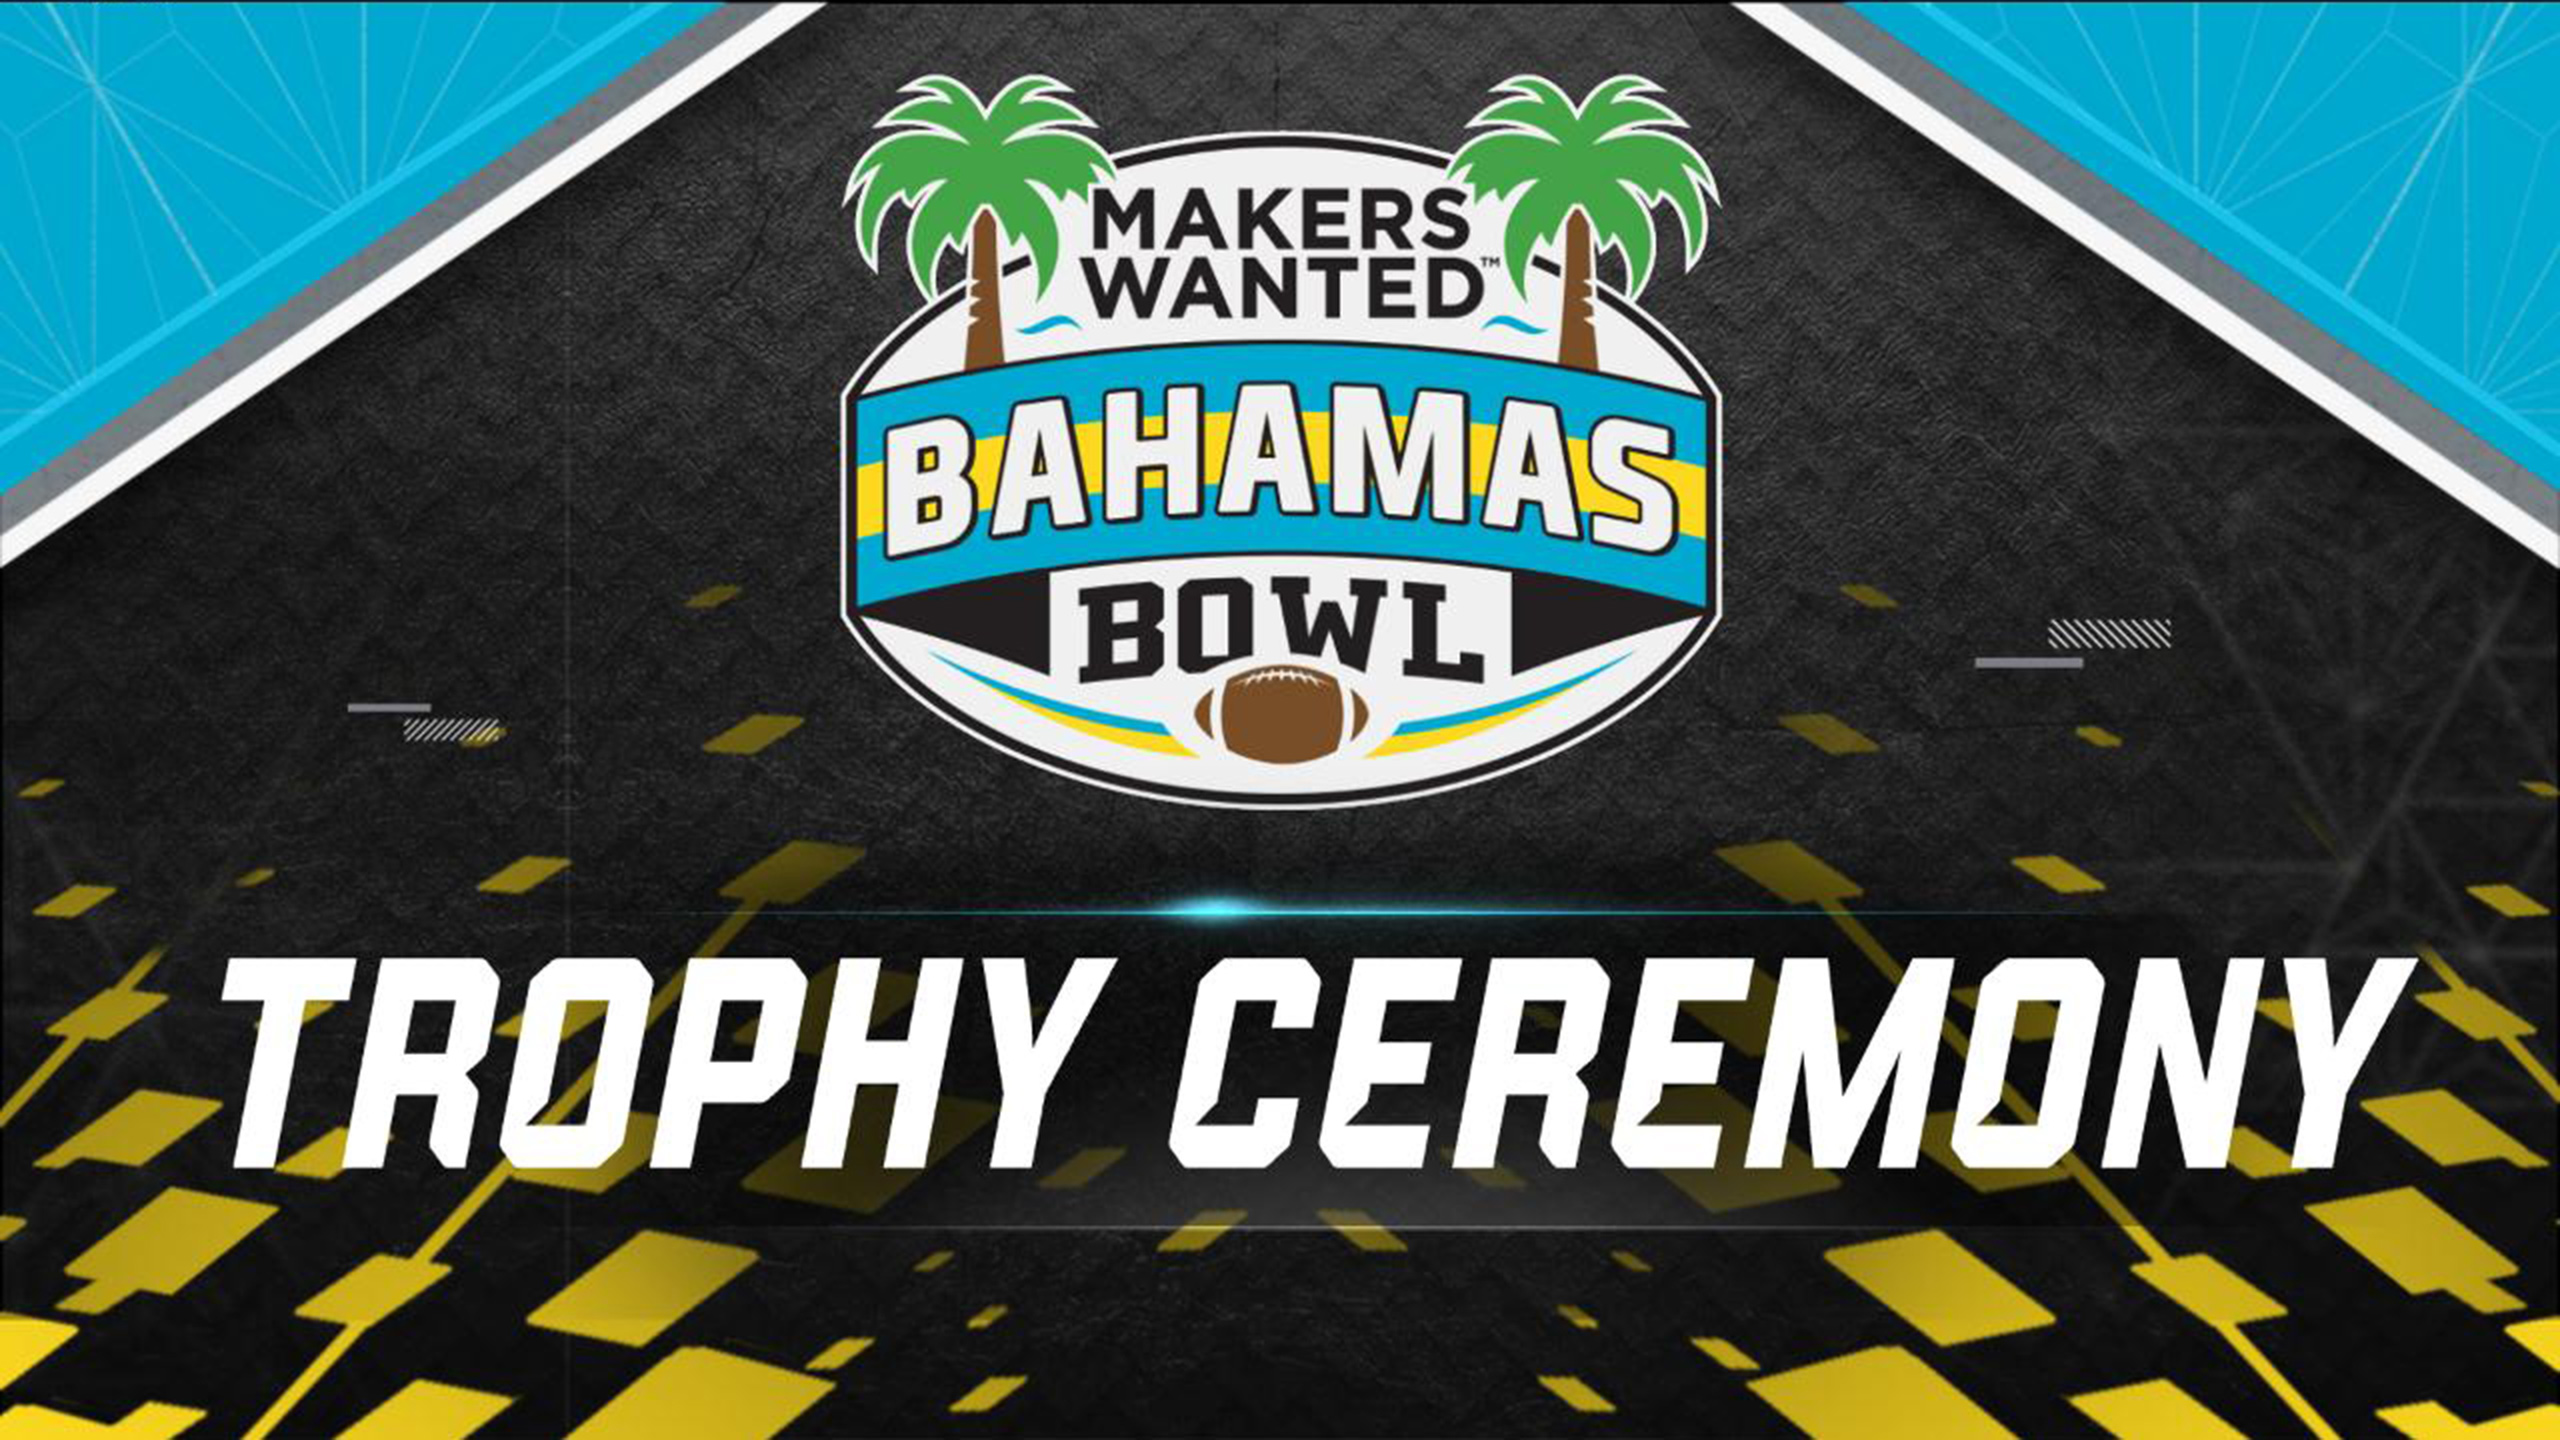 Makers Wanted Bahamas Bowl Trophy Ceremony Presented by Capital One